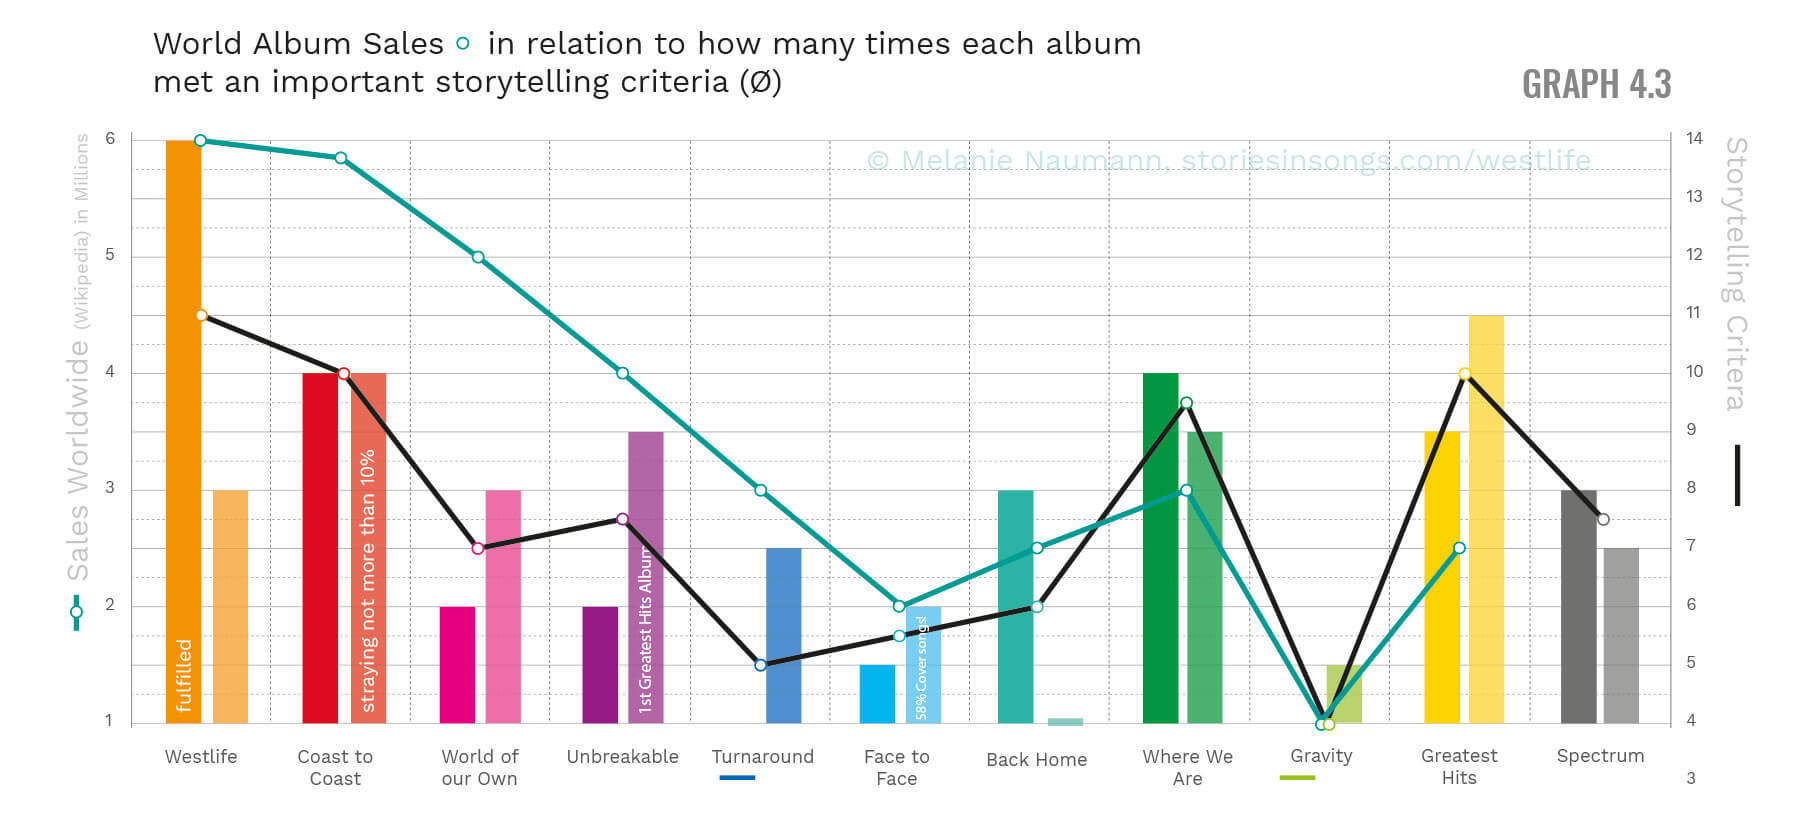 Westlife Albums and expectations of fans